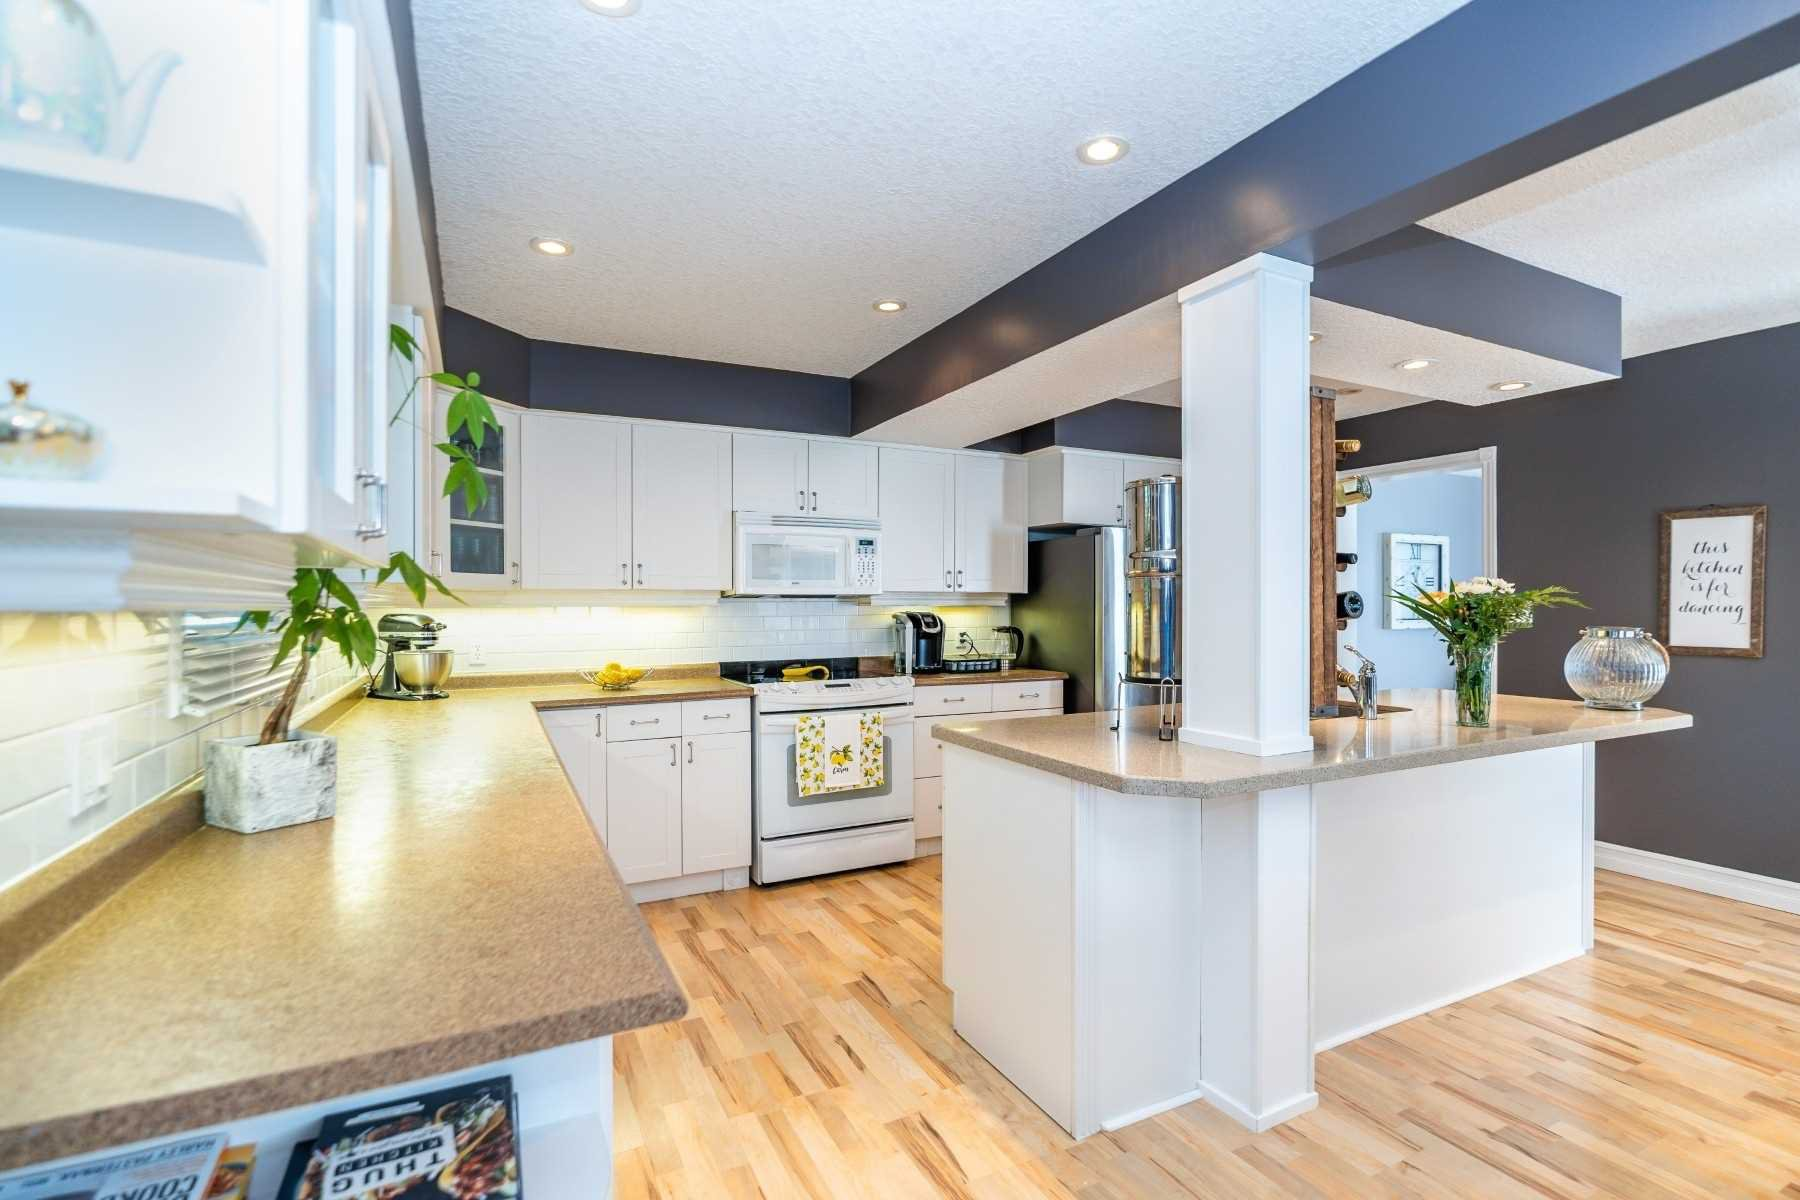 Photo 10: Photos: 1153 Snowberry Court in Oshawa: Pinecrest House (2-Storey) for sale : MLS®# E4794796